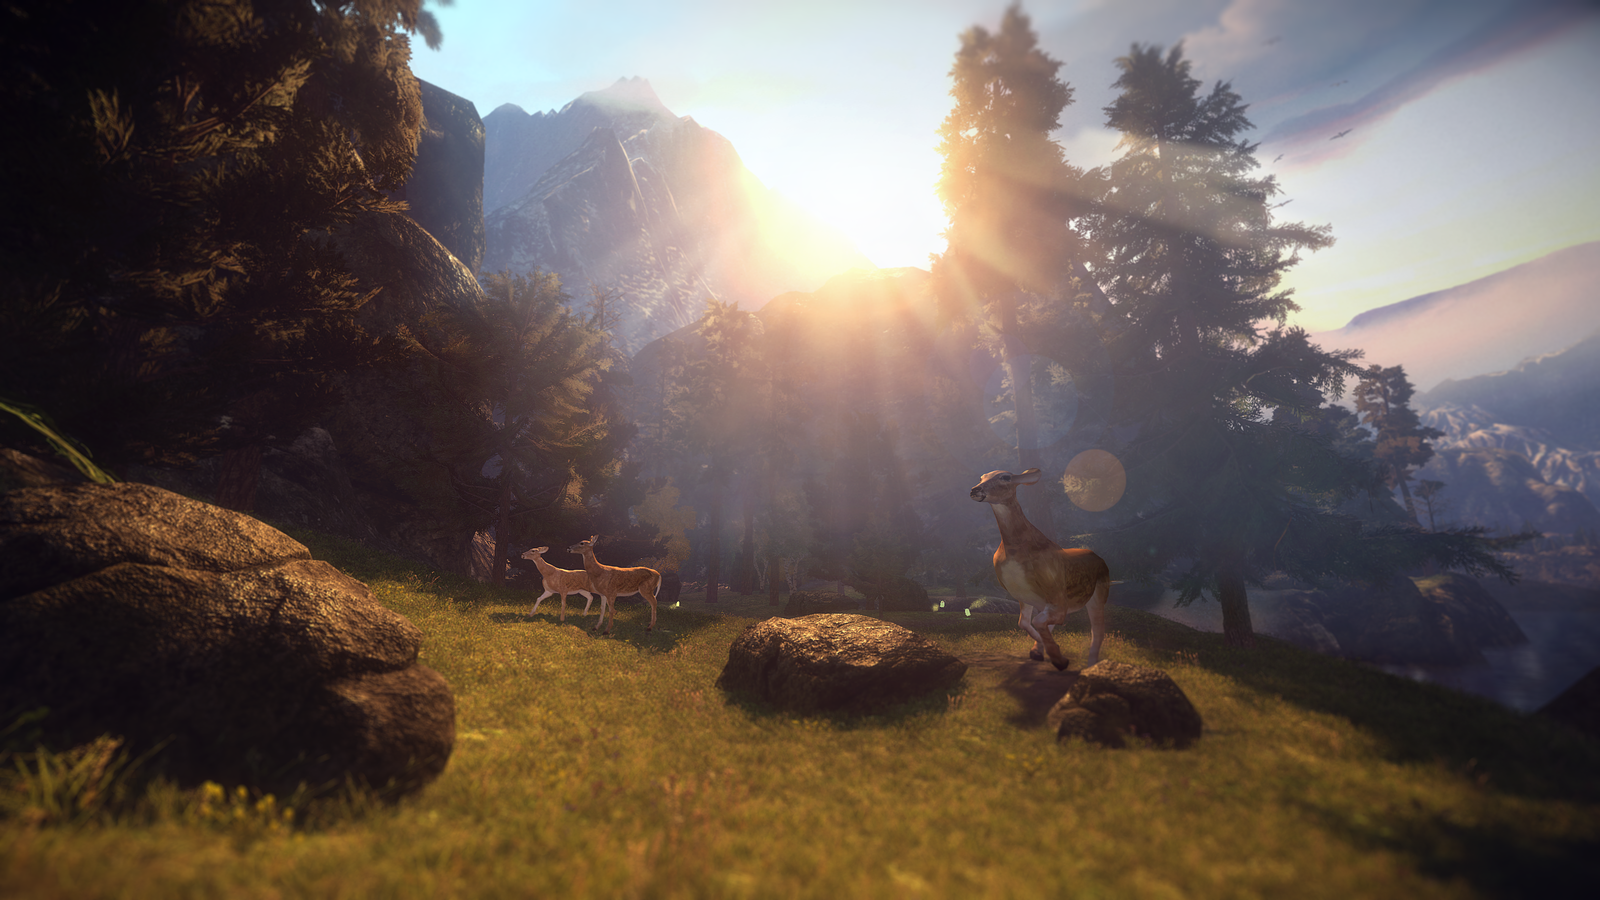 valley-available-now-on-switch-frikigamers.com.jpg